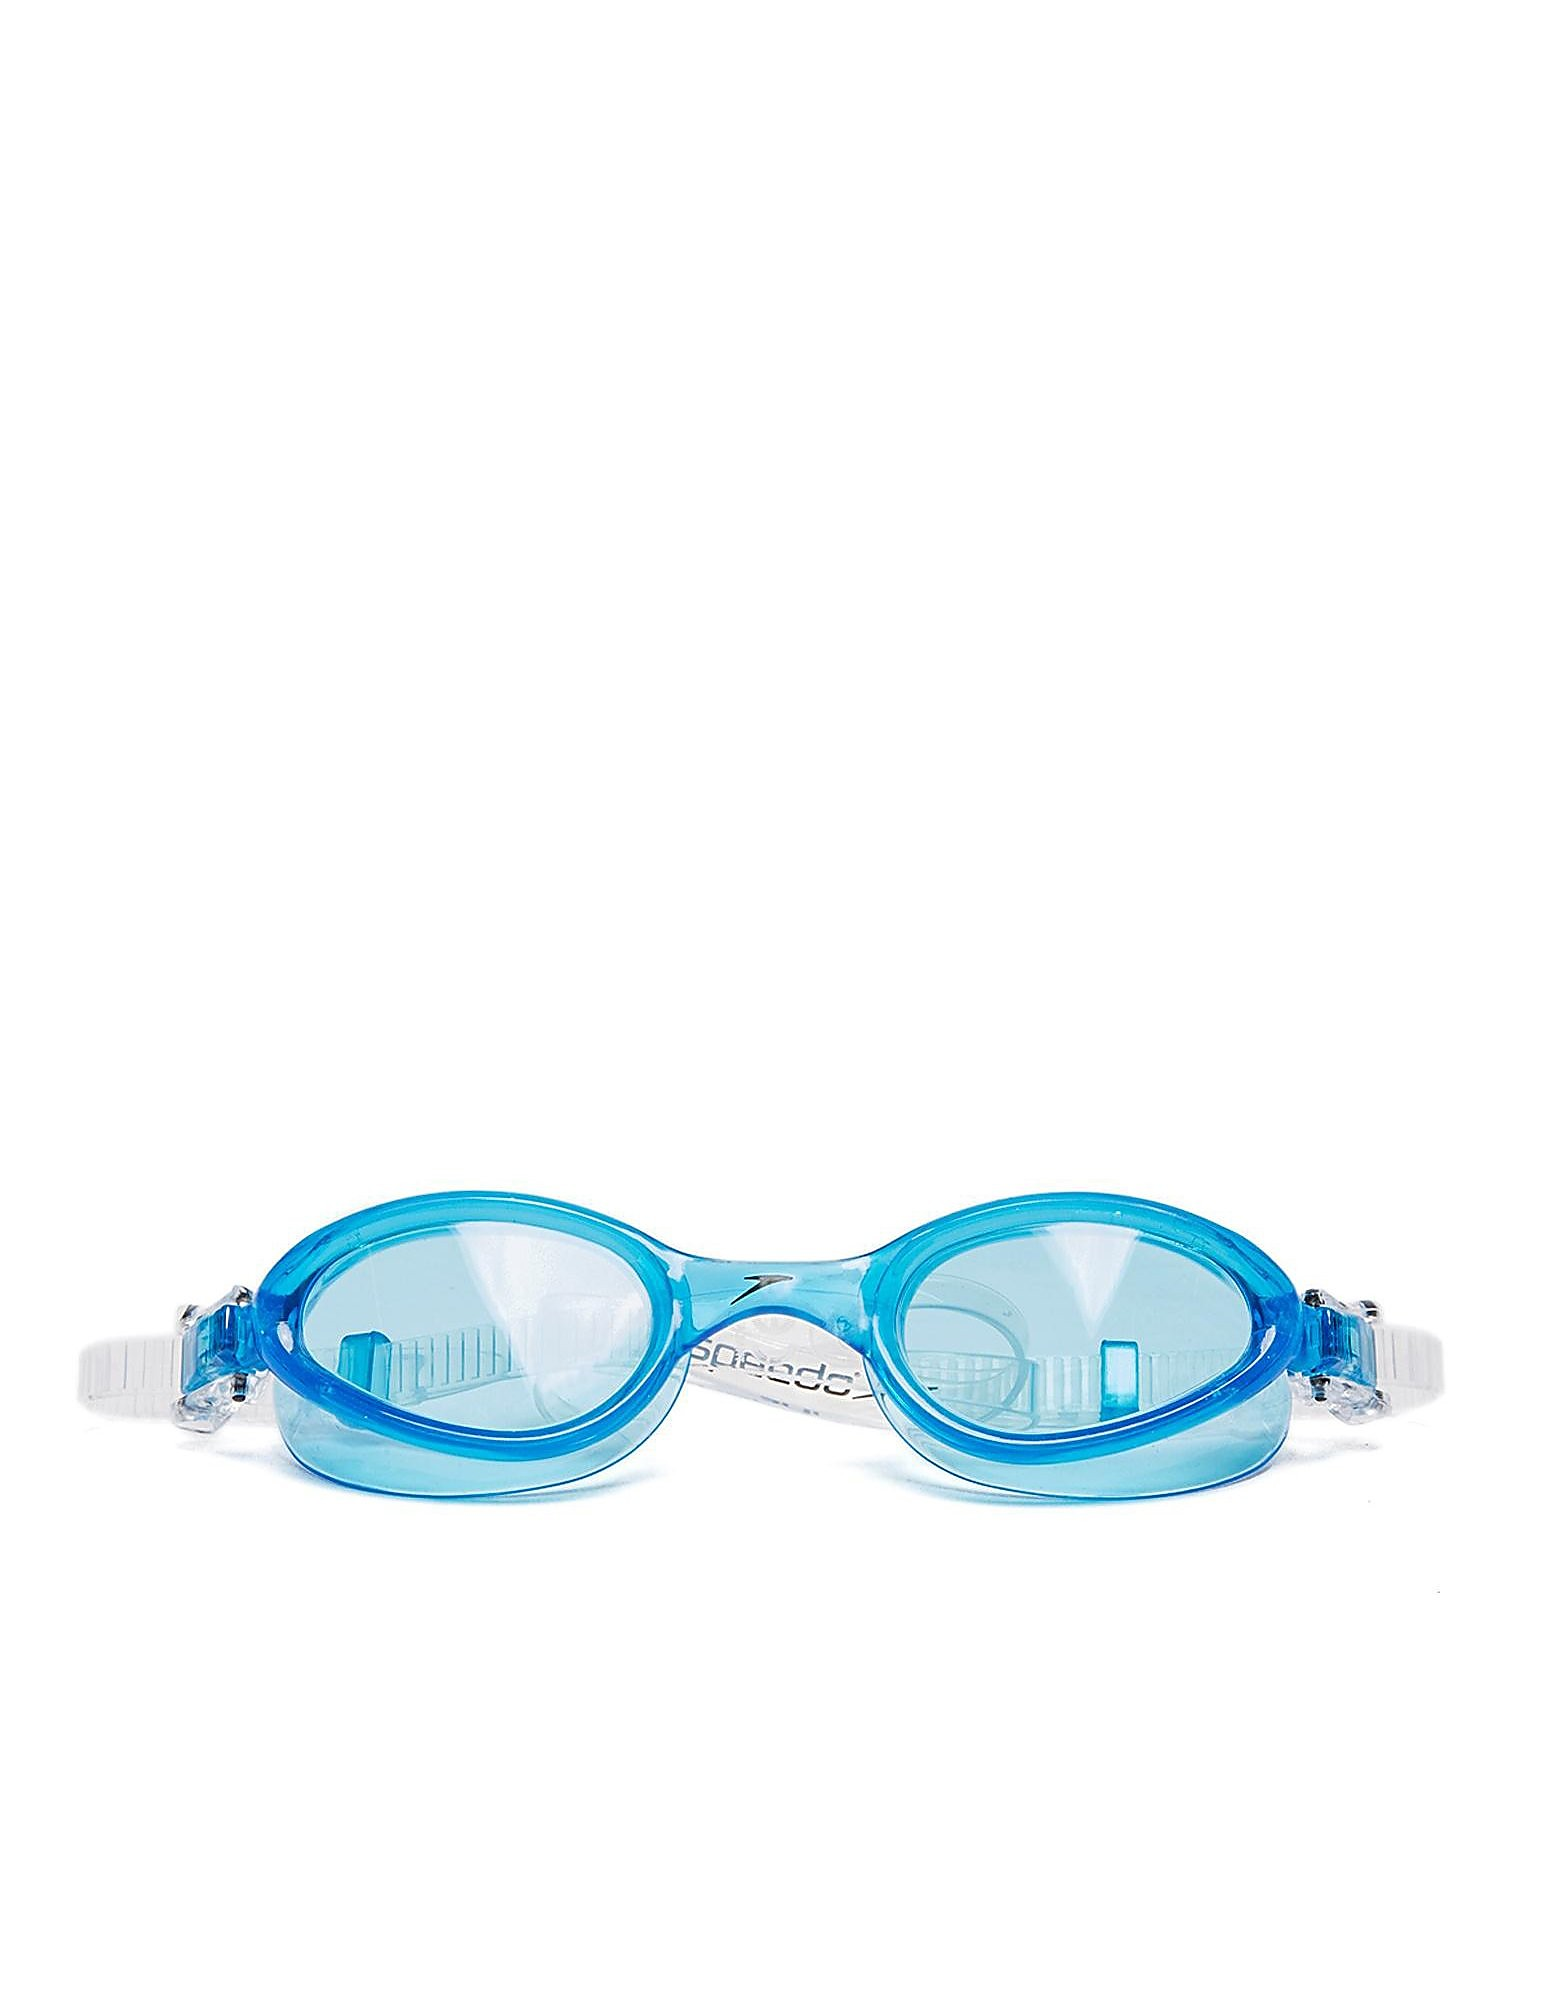 Speedo Futura One Goggles